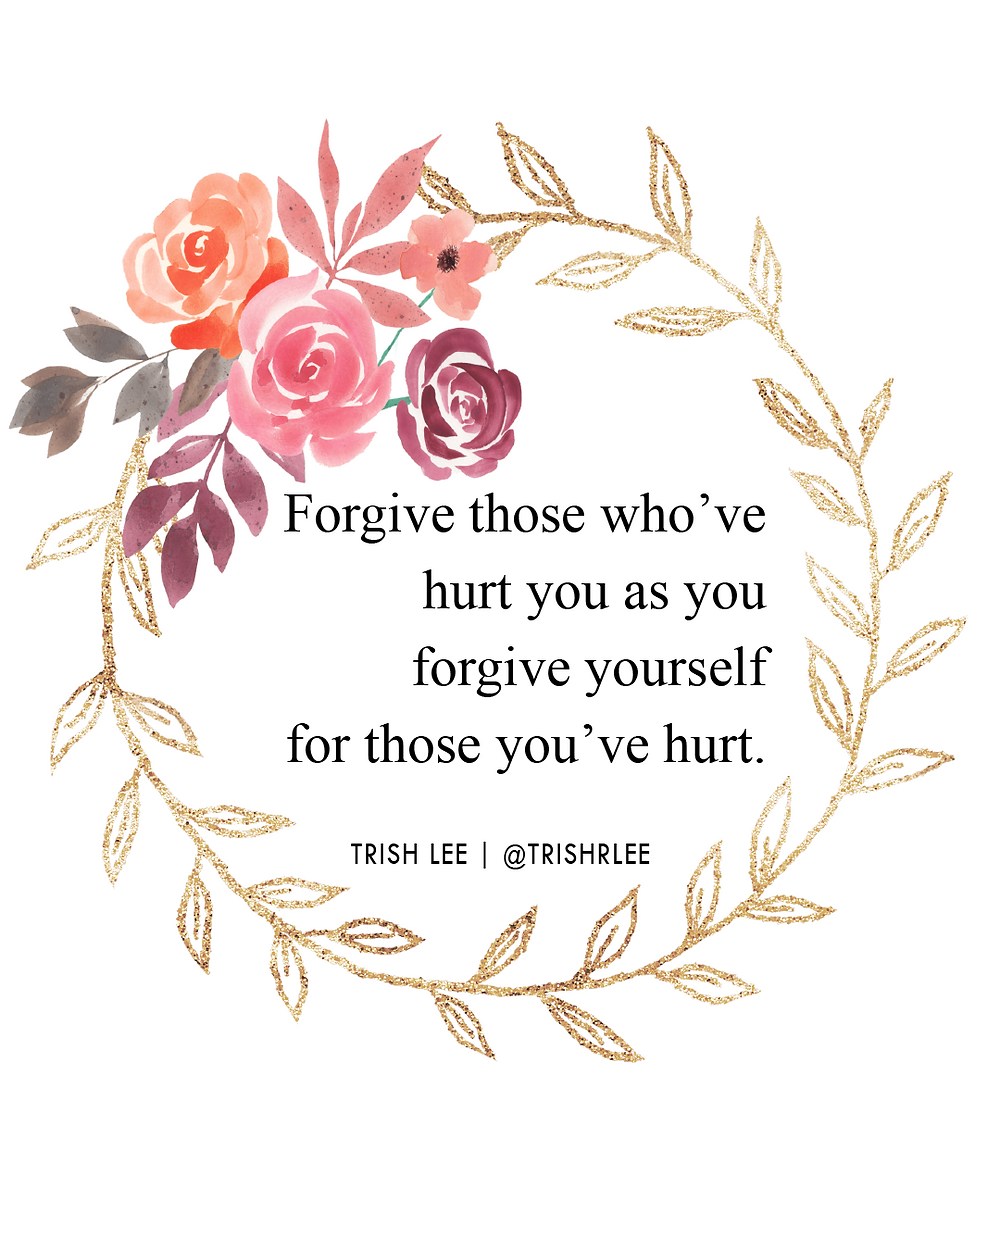 How Do You Define Forgiveness?